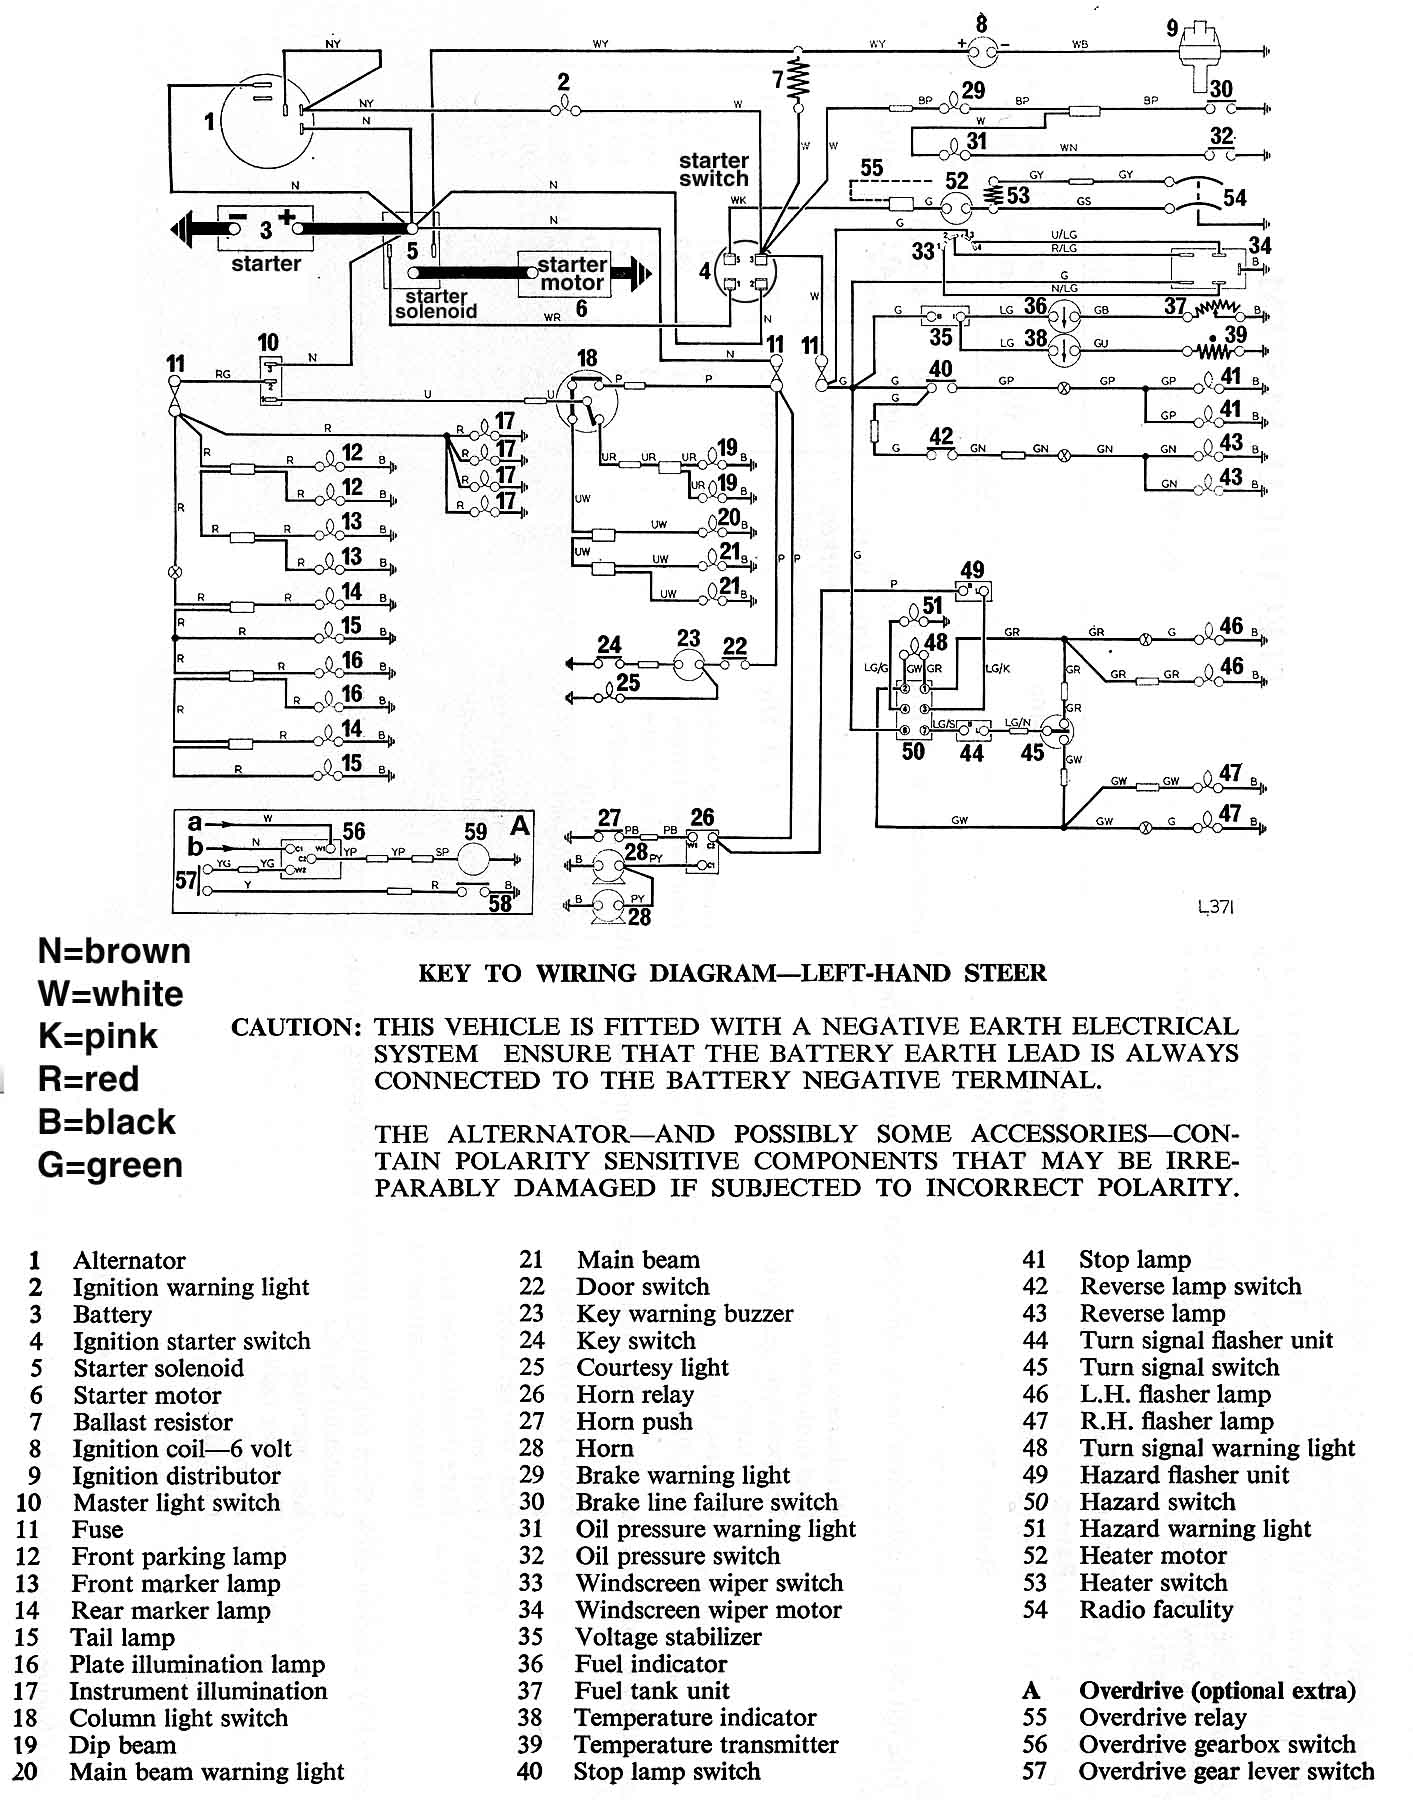 1974 spitfire 1500 wire diagram   spitfire  u0026 gt6 forum